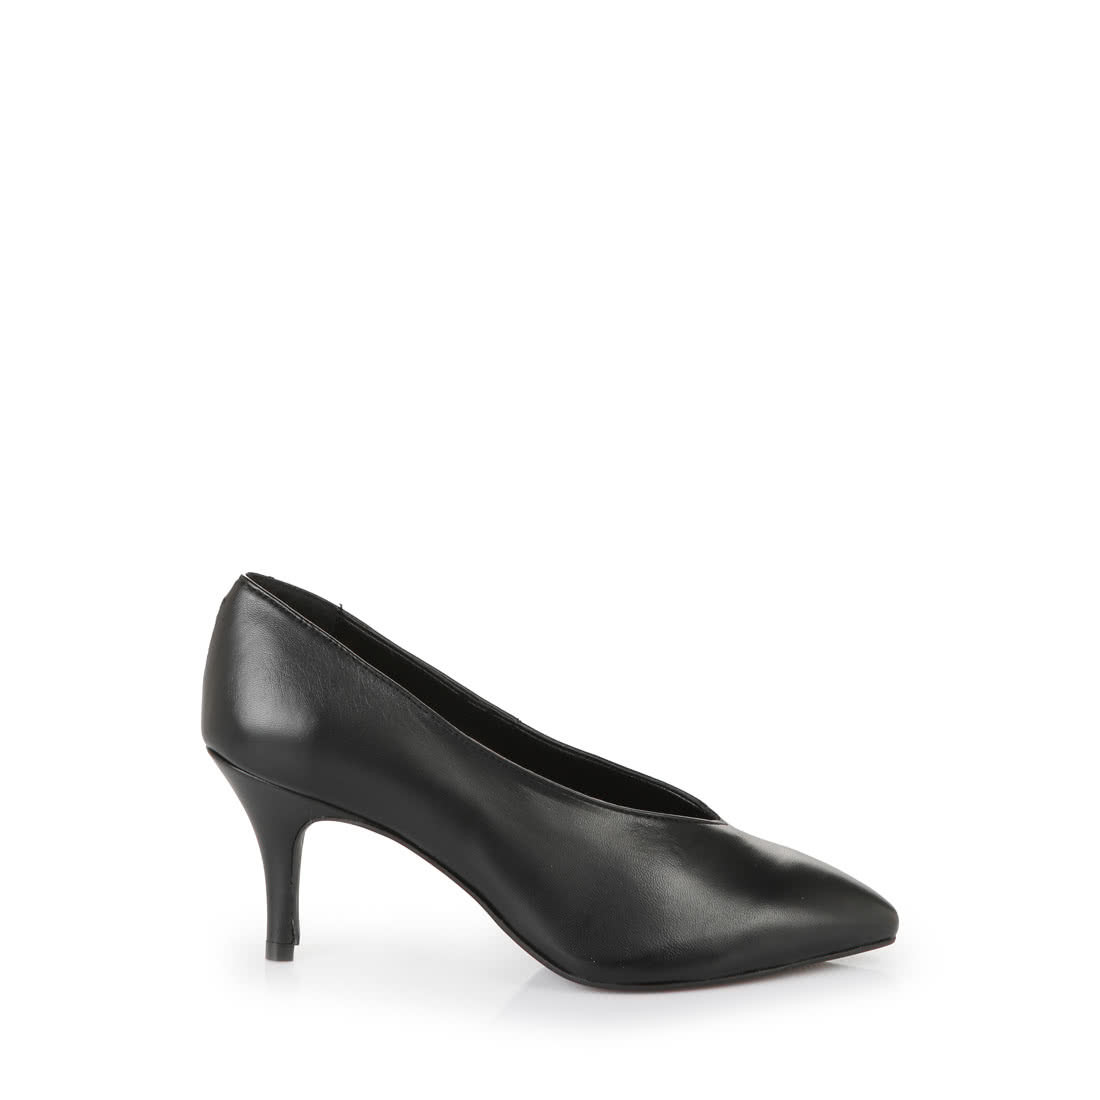 a373271dfdbf Buffalo pointed-toe V-cut heels in black smooth leather buy online ...